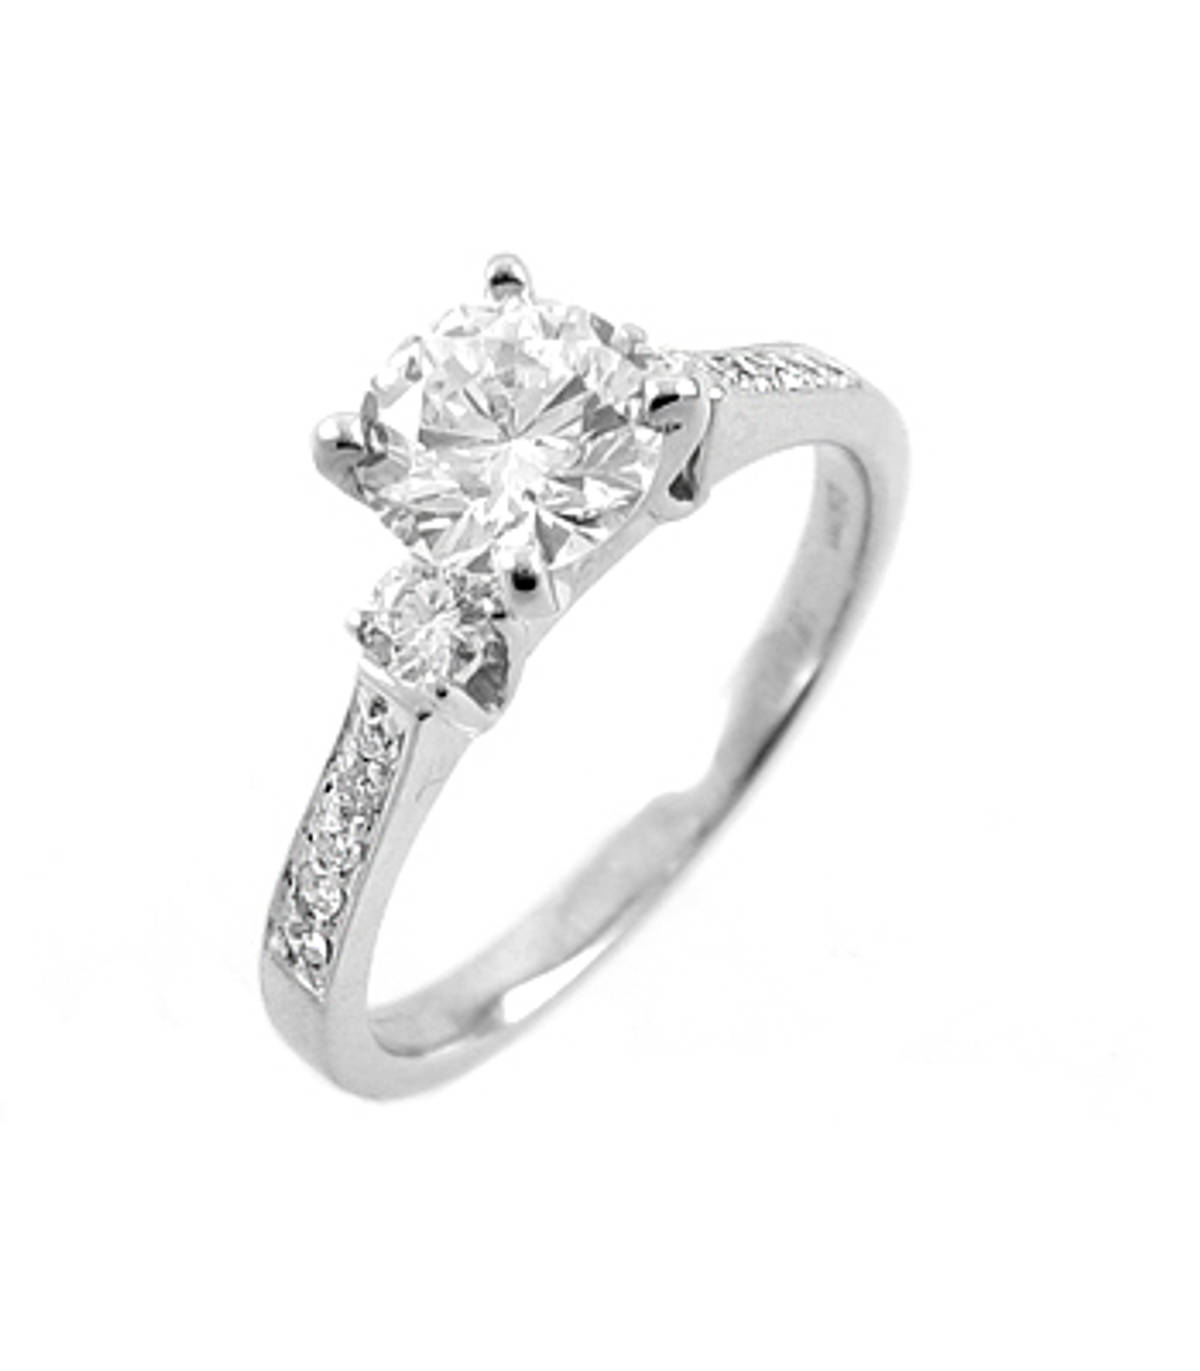 18ct white gold irish-made engagement ring with one 0.40 carat brilliant cut centre diamond, and 0.20 carat brilliant cut diamonds in shoulders.